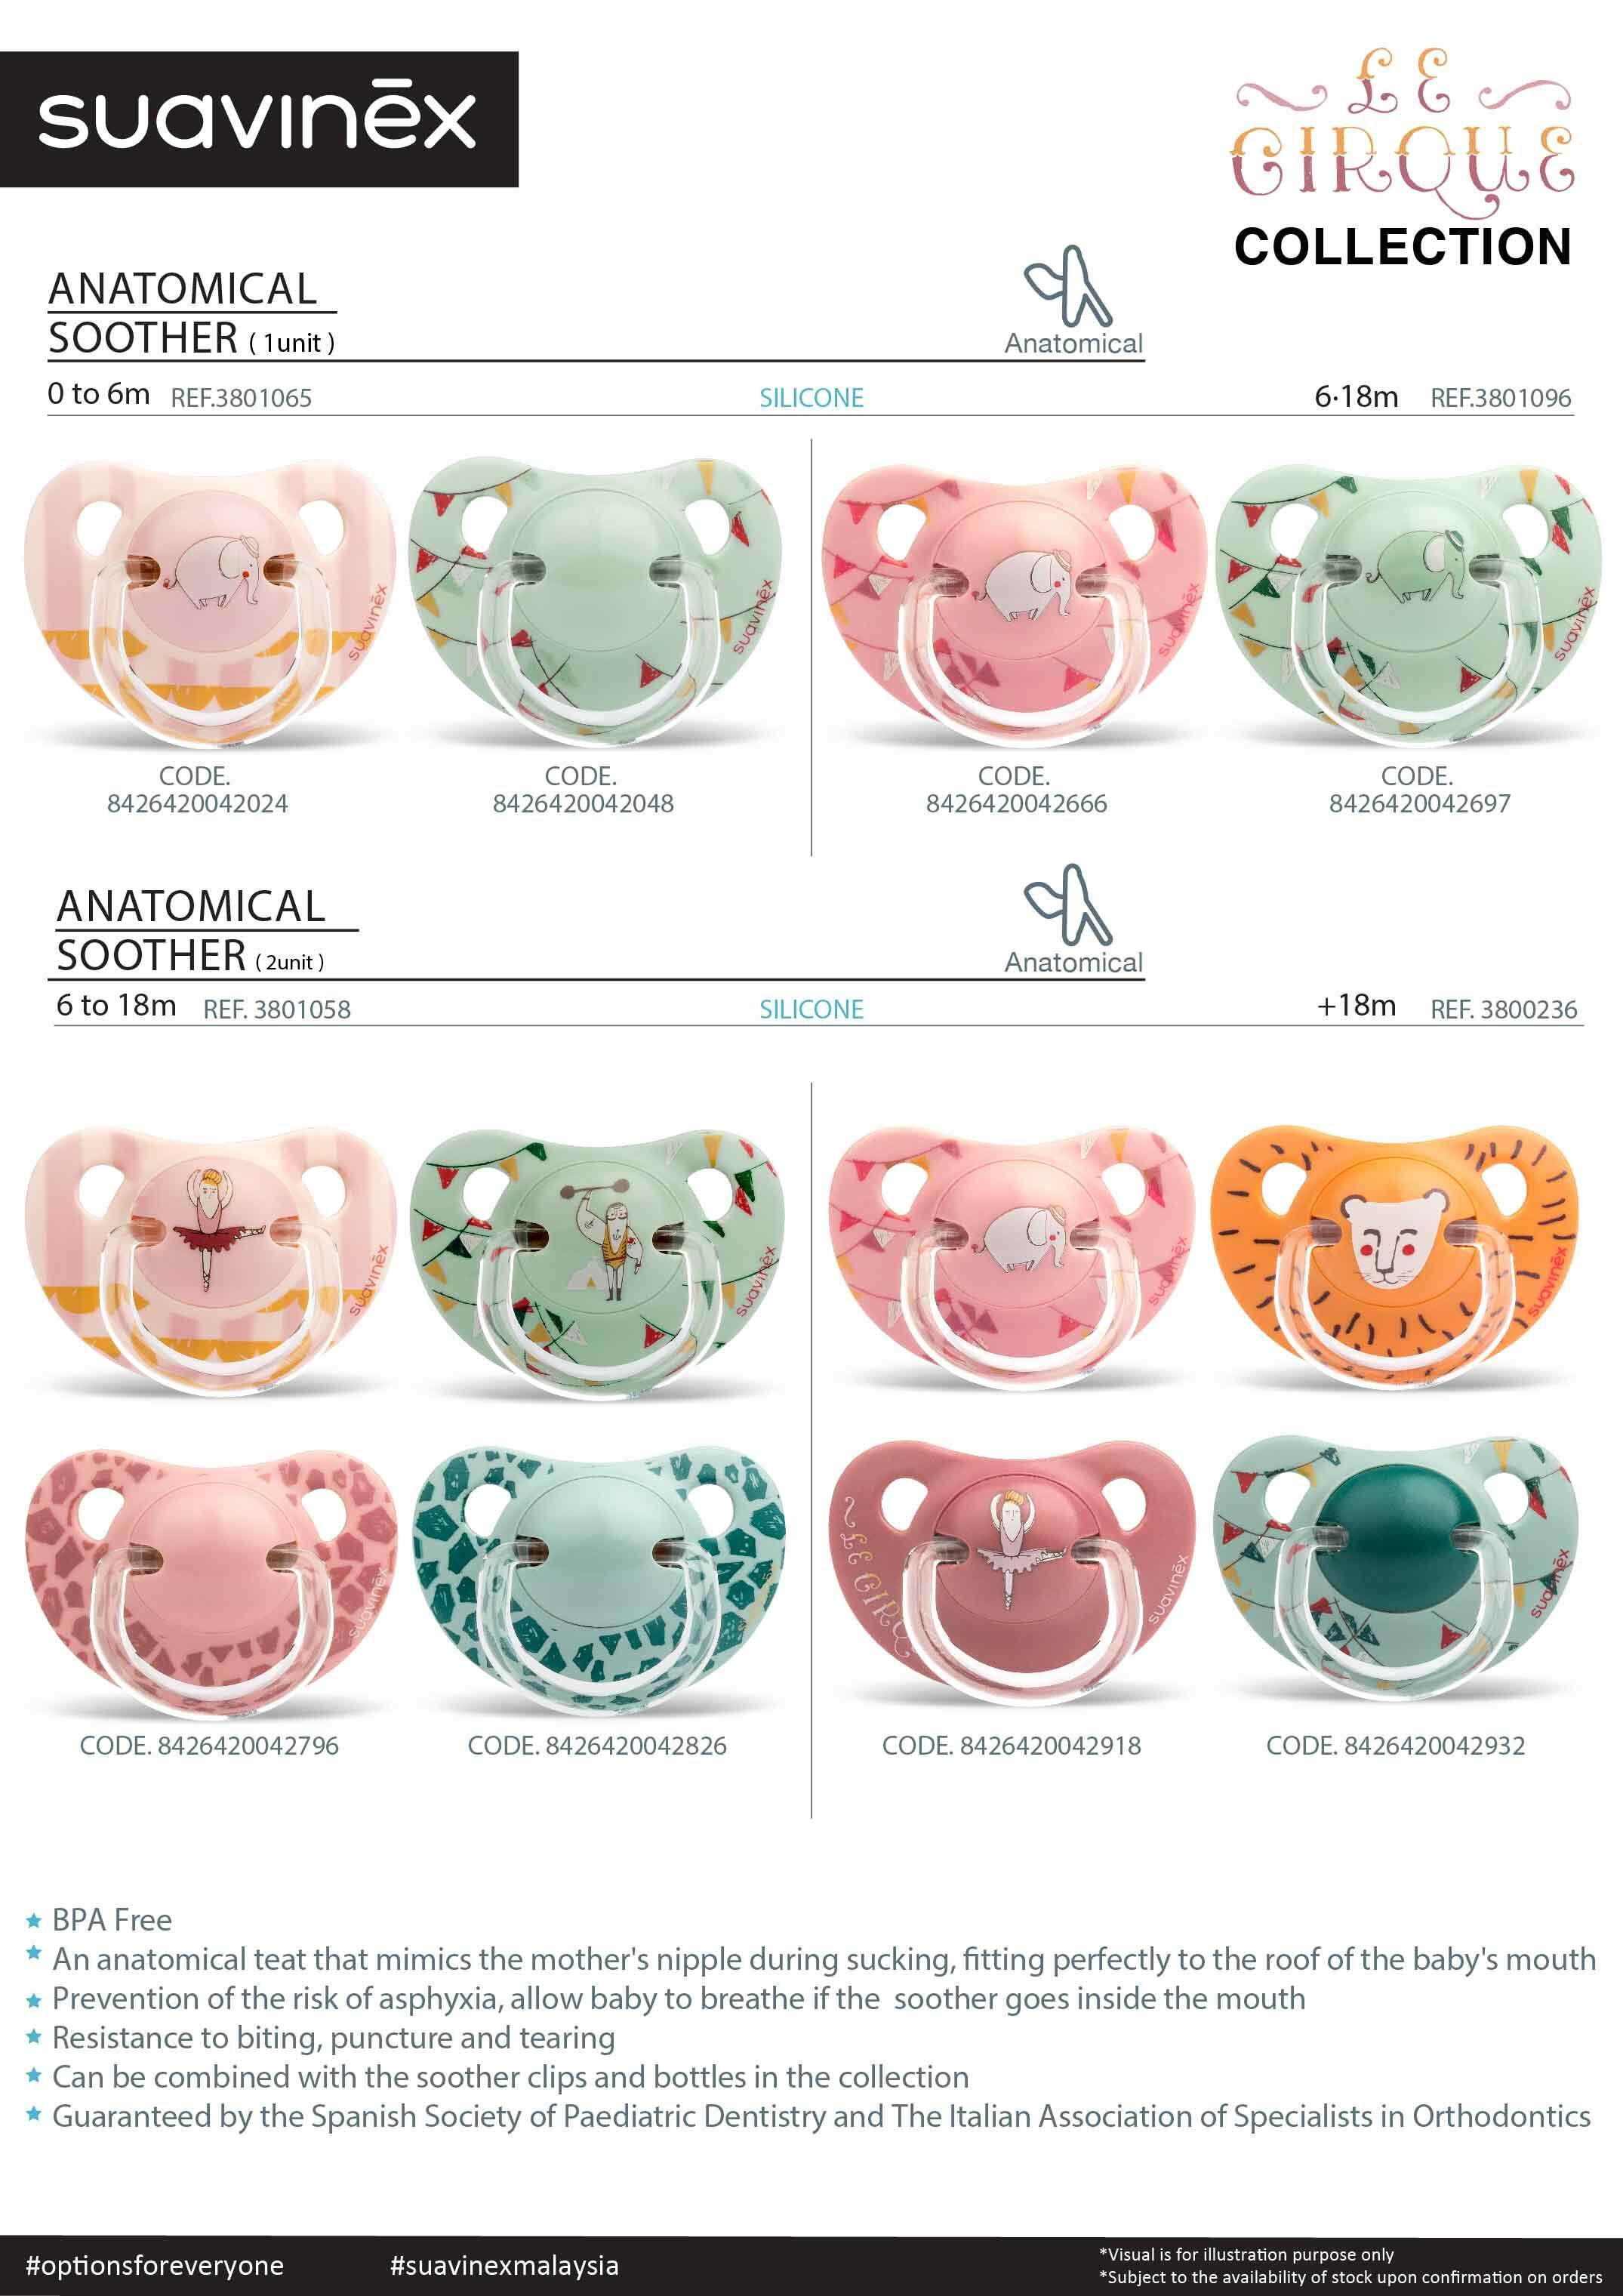 Suavinex Circus Collection BPA Free 6-18 Months Anatomical Silicone Soother Pacifier Clip Set (Green